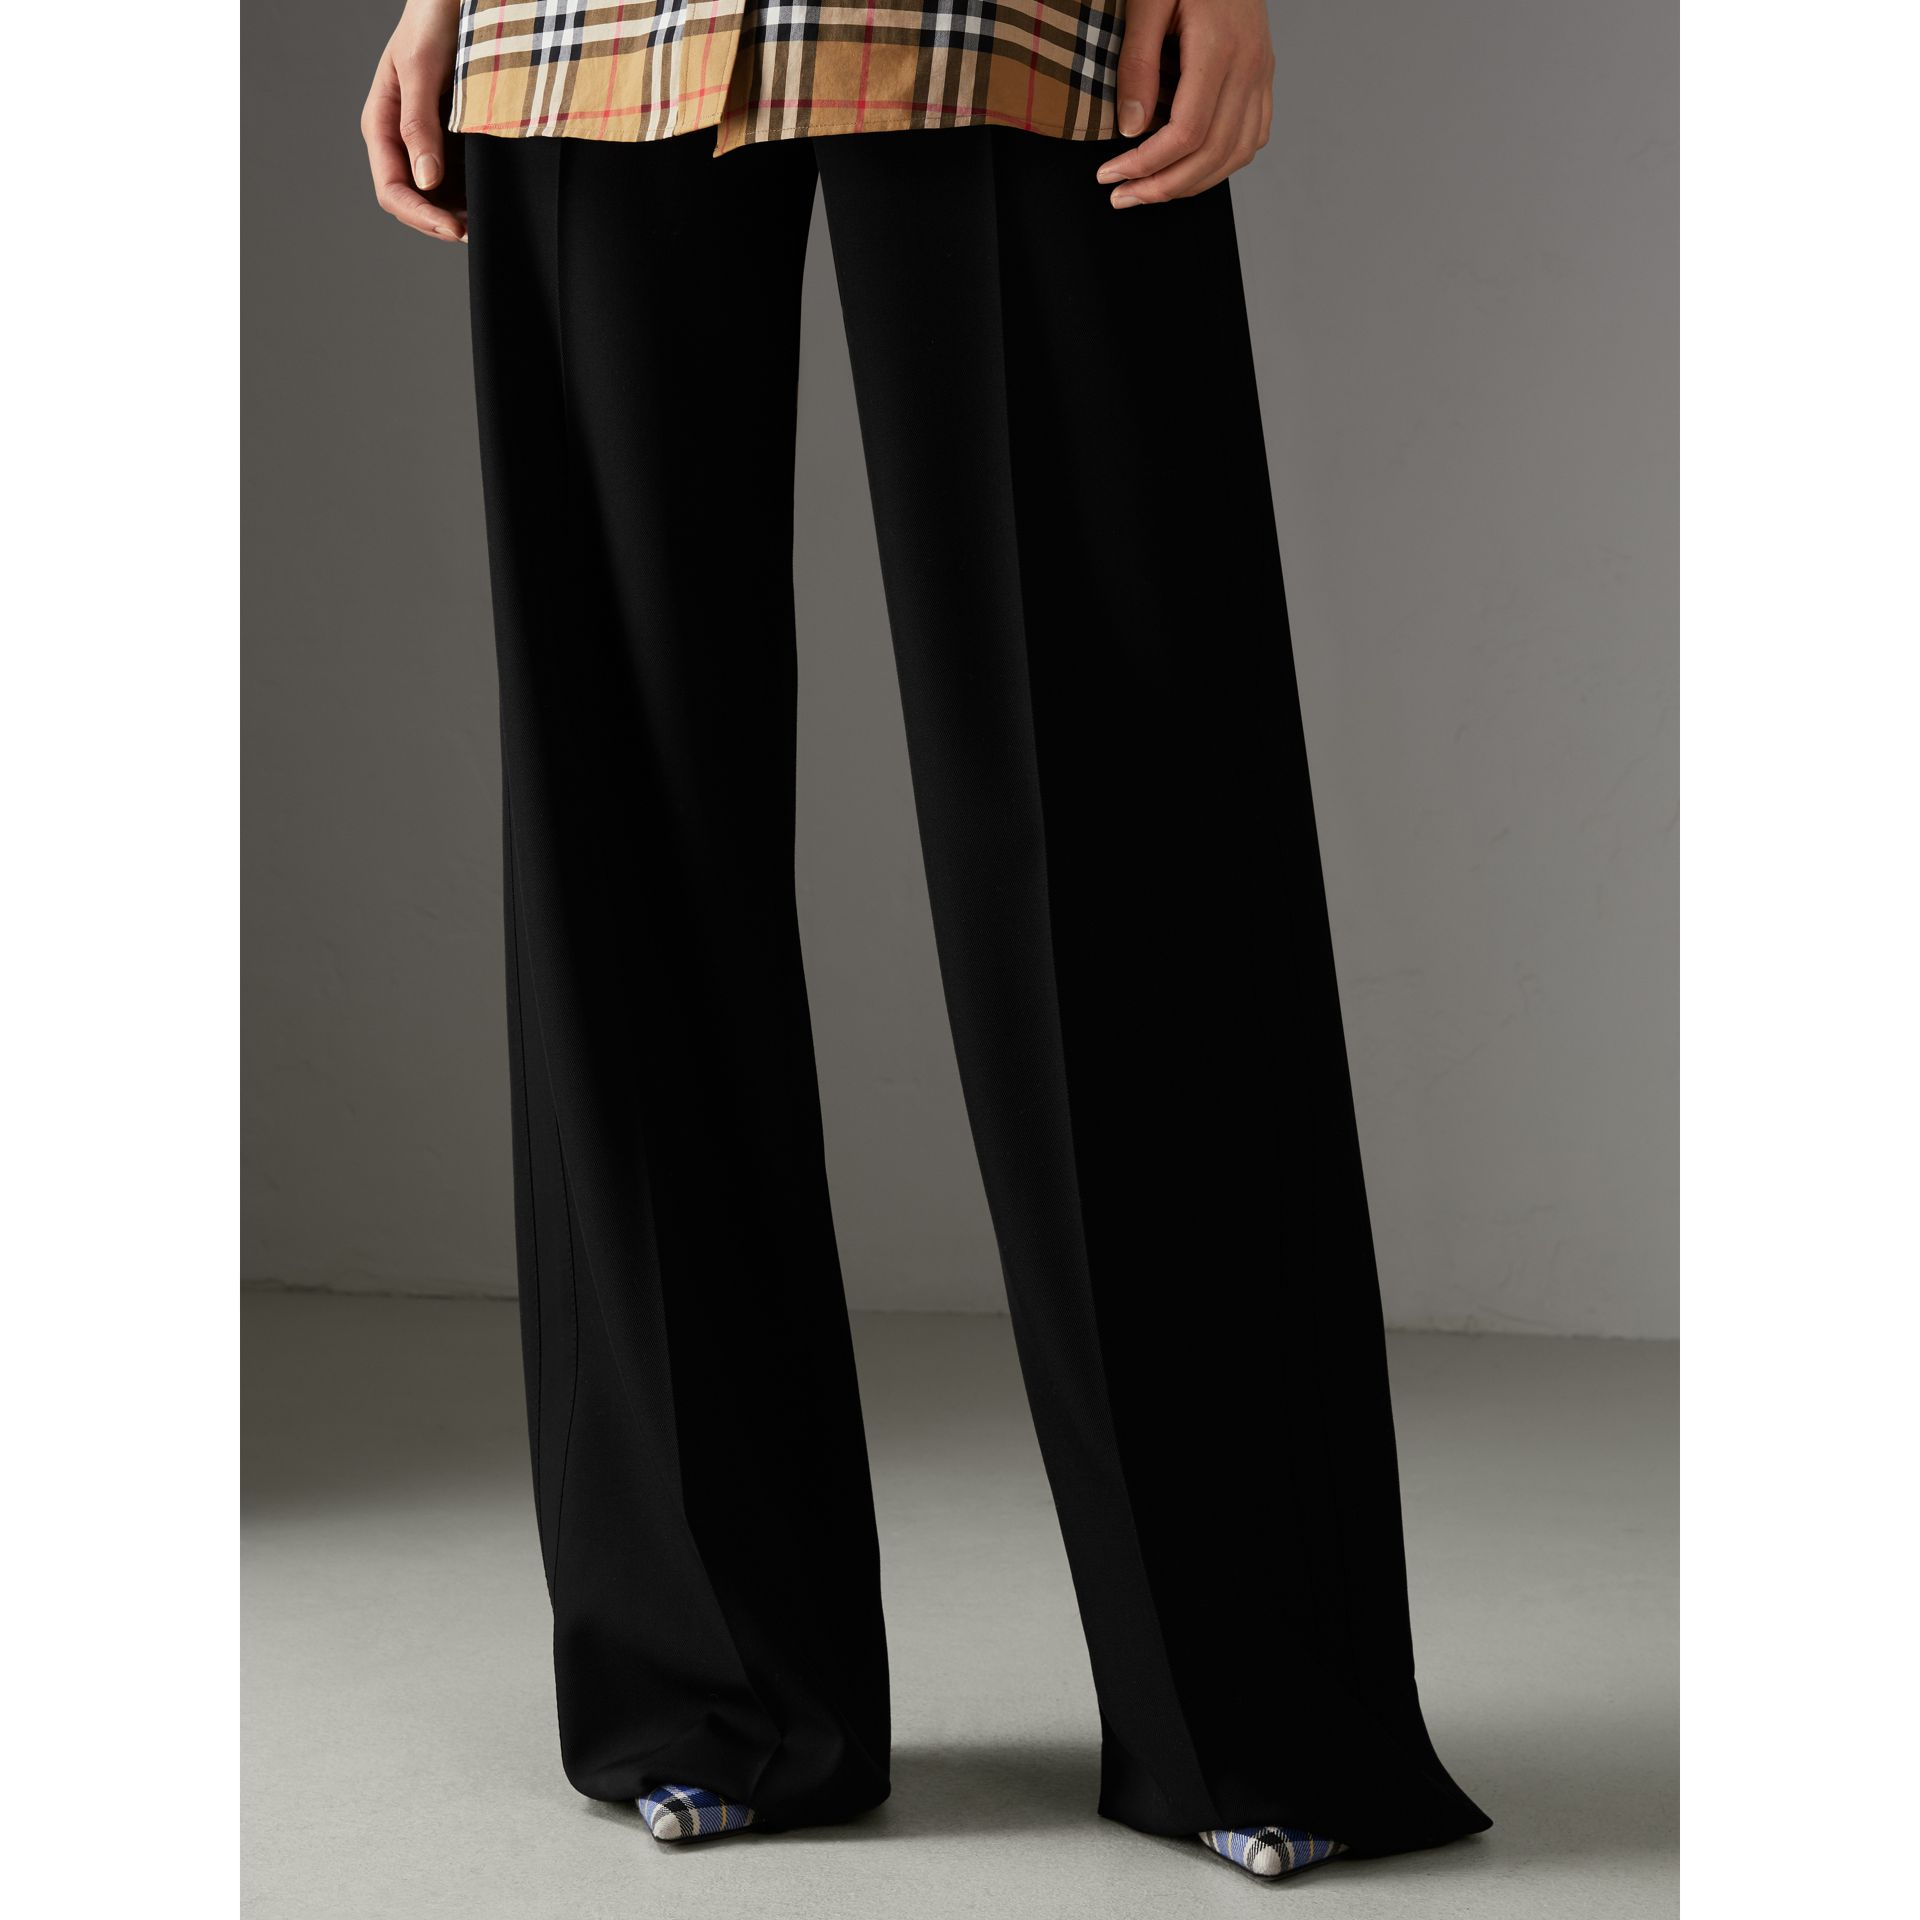 Wool High-waisted Trousers in Black - Women | Burberry United States - gallery image 4